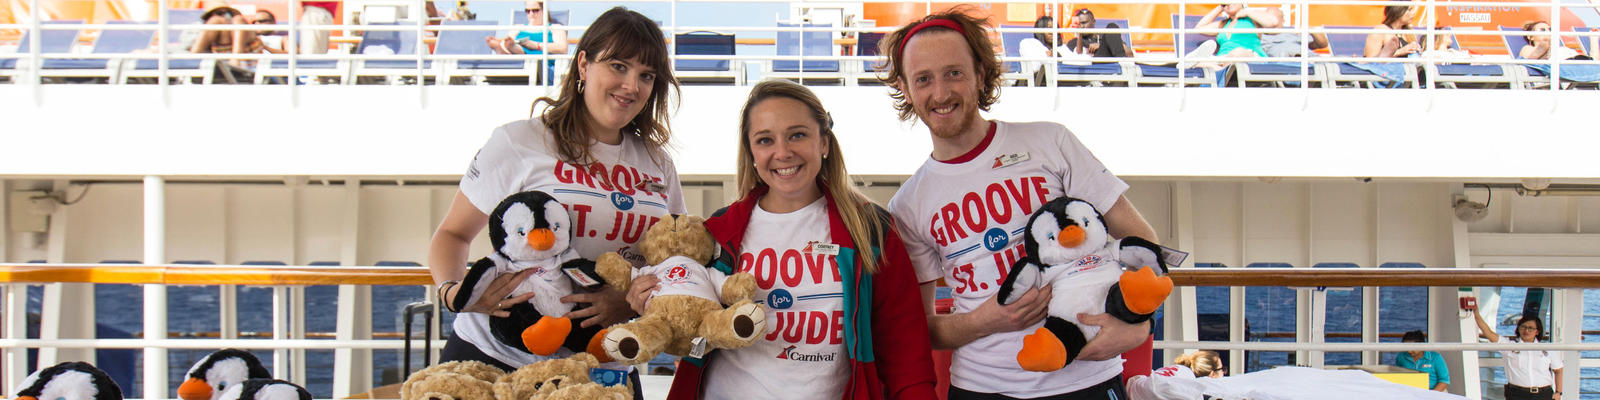 Groove for St. Jude on Carnival Inspiration (Photo: Cruise Critic)